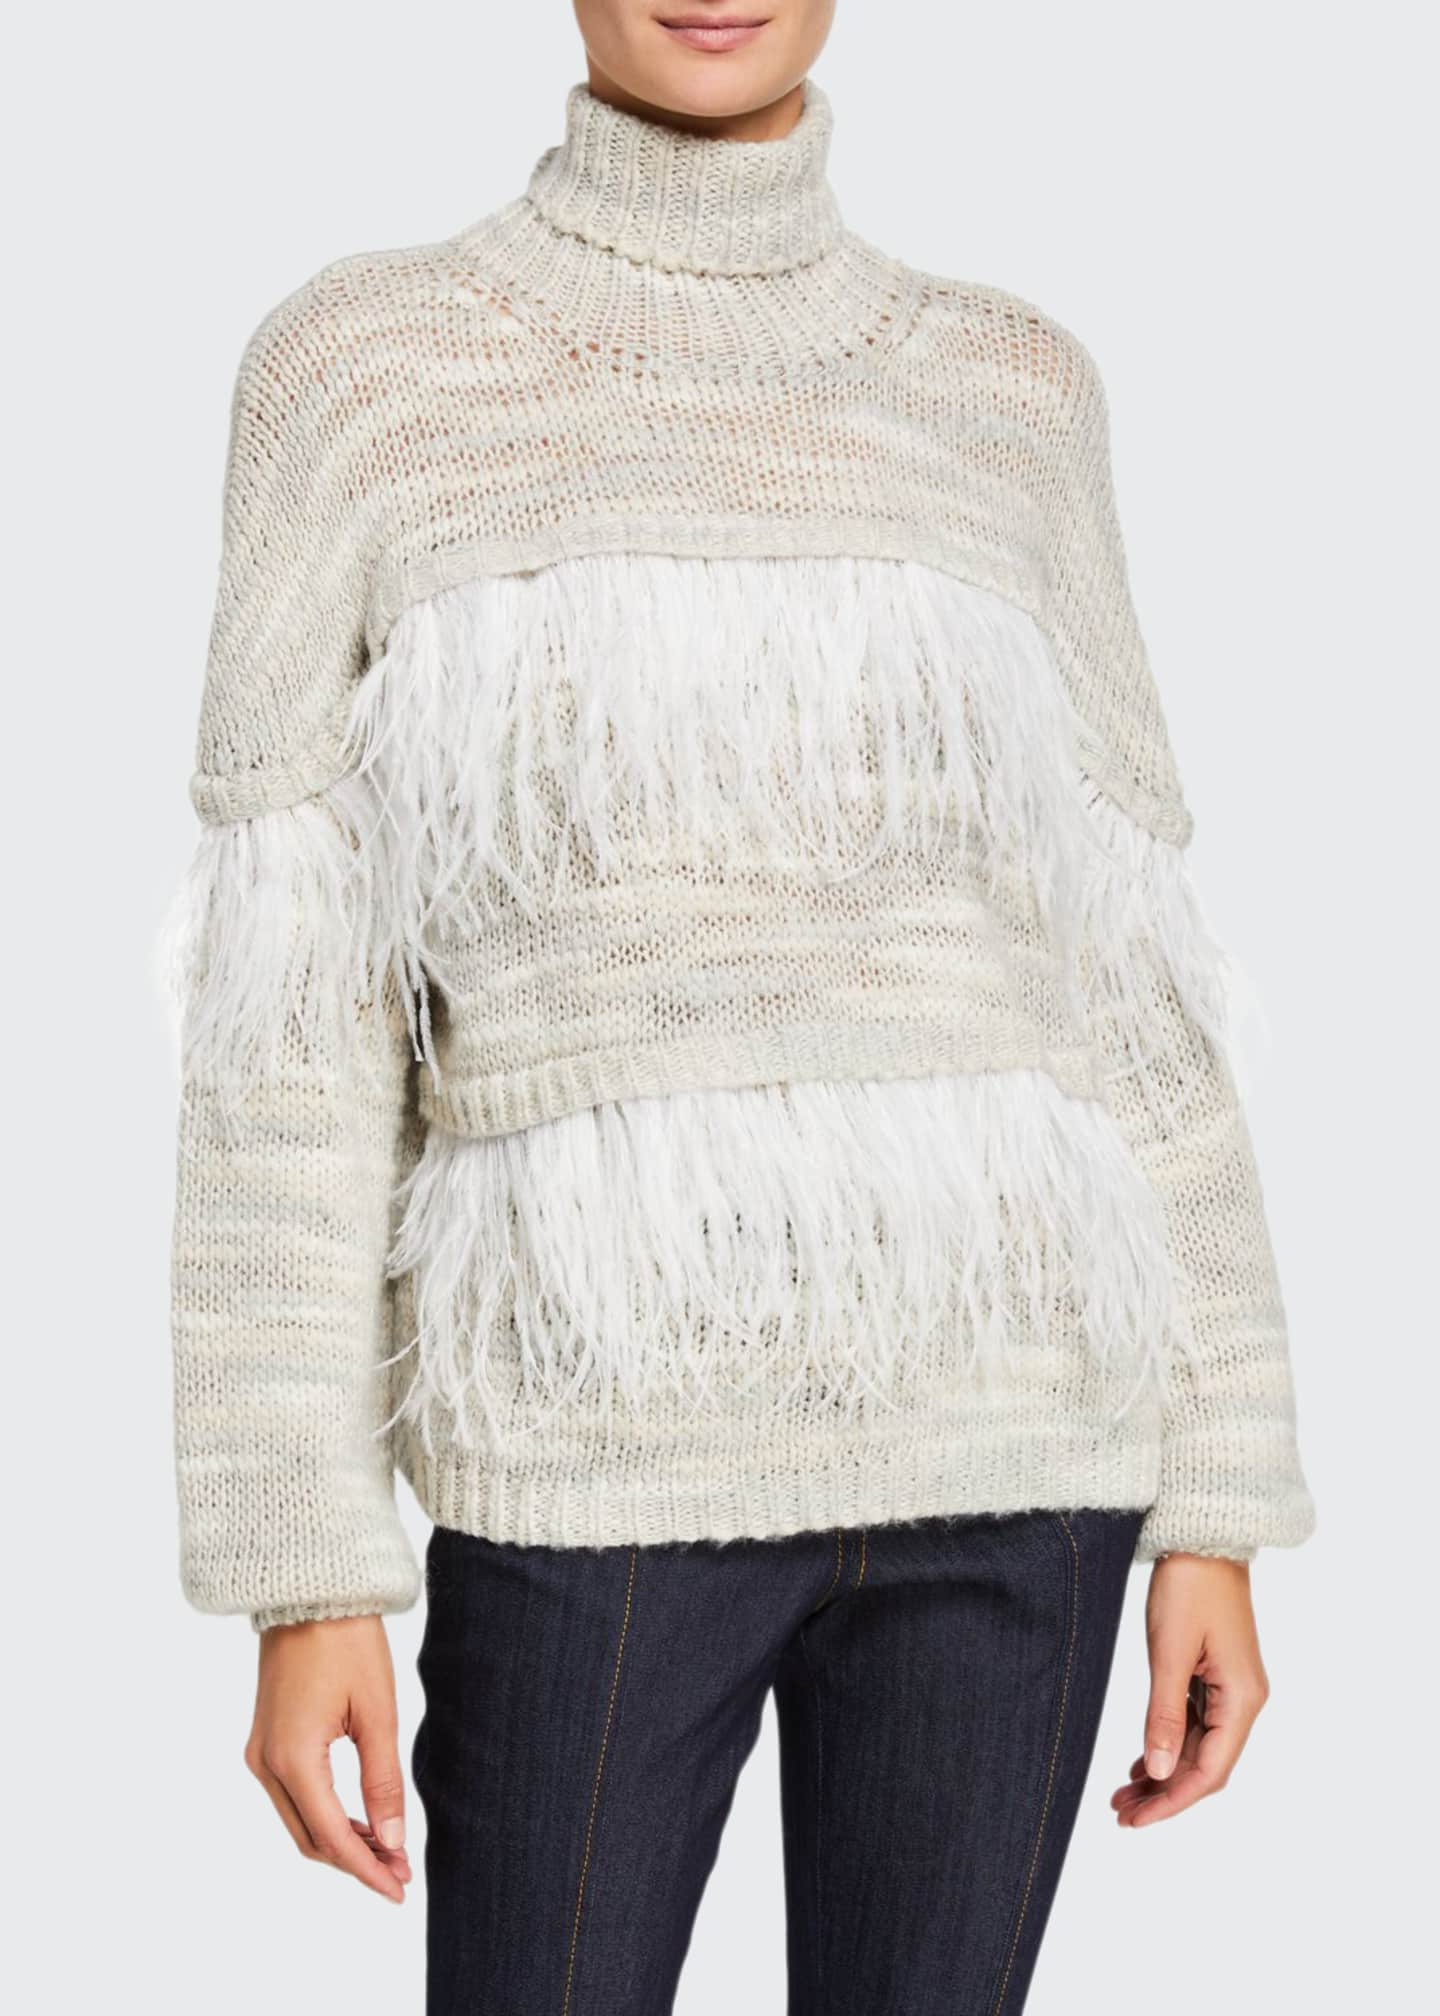 cinq a sept Valentina Turtleneck Sweater with Feathers